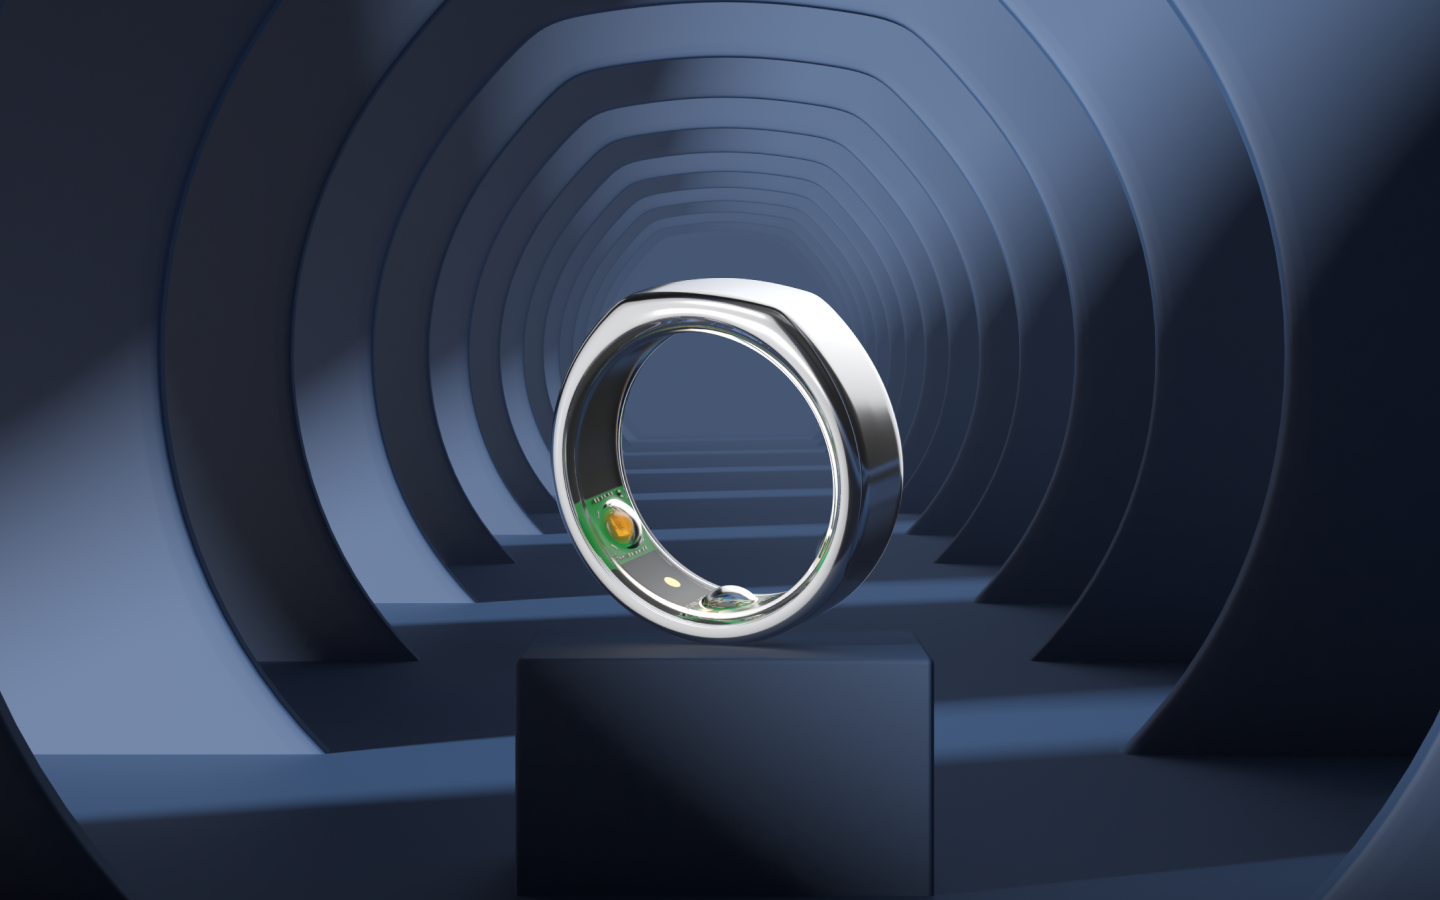 Heritage Silver Oura Ring